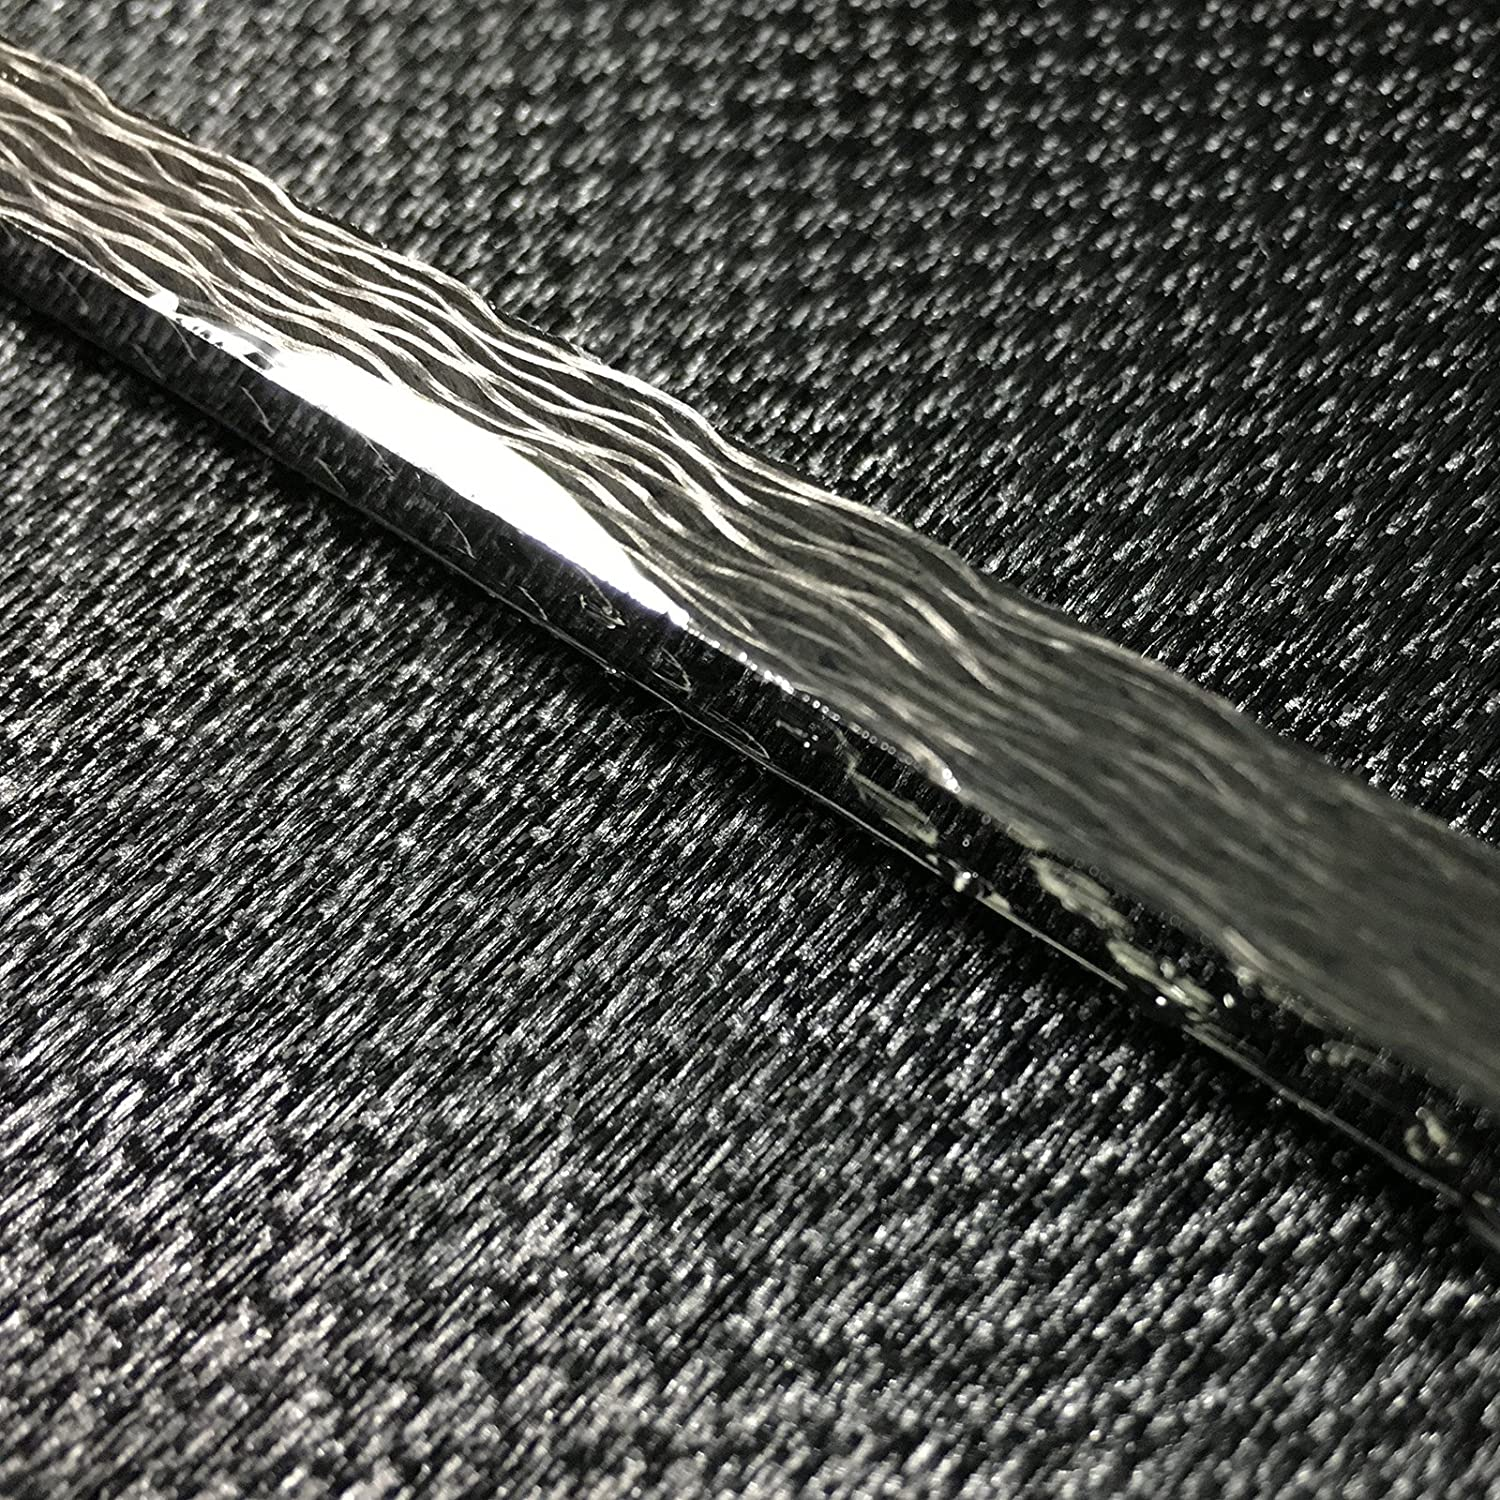 Amazon.com: Carbon Fiber Plate Sheet - Void Free made by SKUR ...